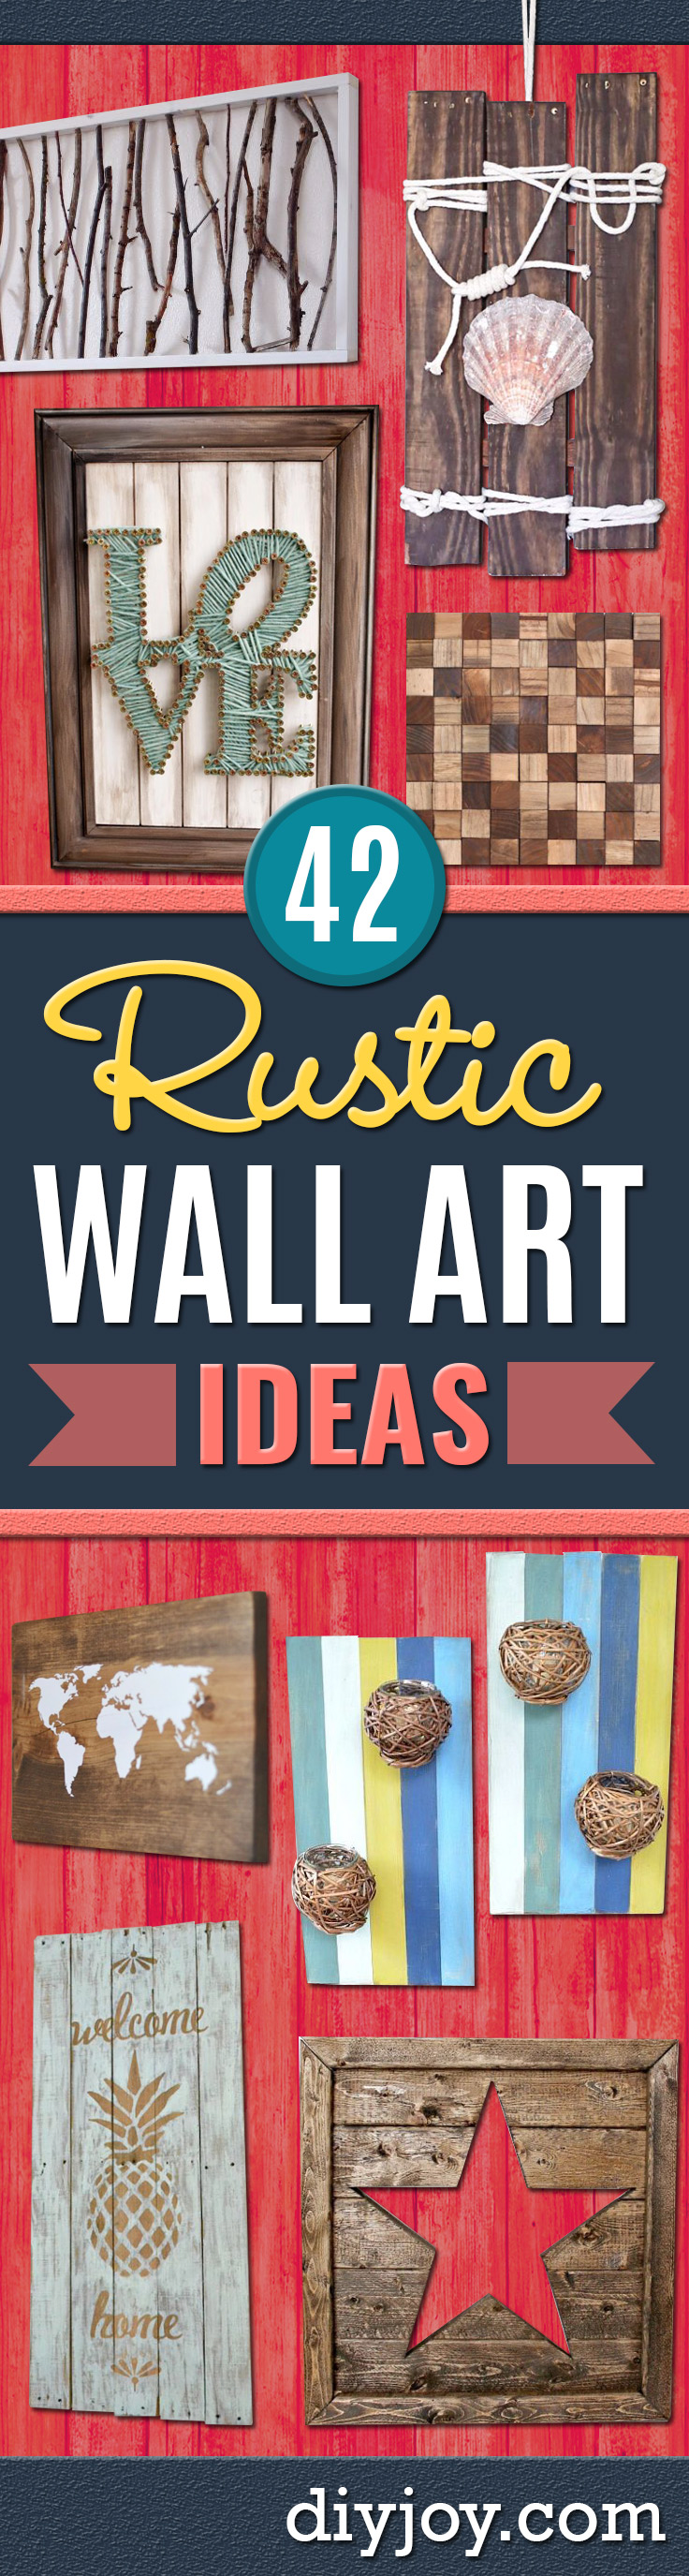 Rustic DIY Wall Art Ideas - DIY Farmhouse Wall Art and Vintage Decor for Walls - Country Crafts and Rustic Home Decor Made Easy With Instructions and Tutorials - String Art, Repurposed Pallet Projects, Mason Jar Crafts, Vintage Signs, Word Art and Letters, Monograms and Sewing Projects